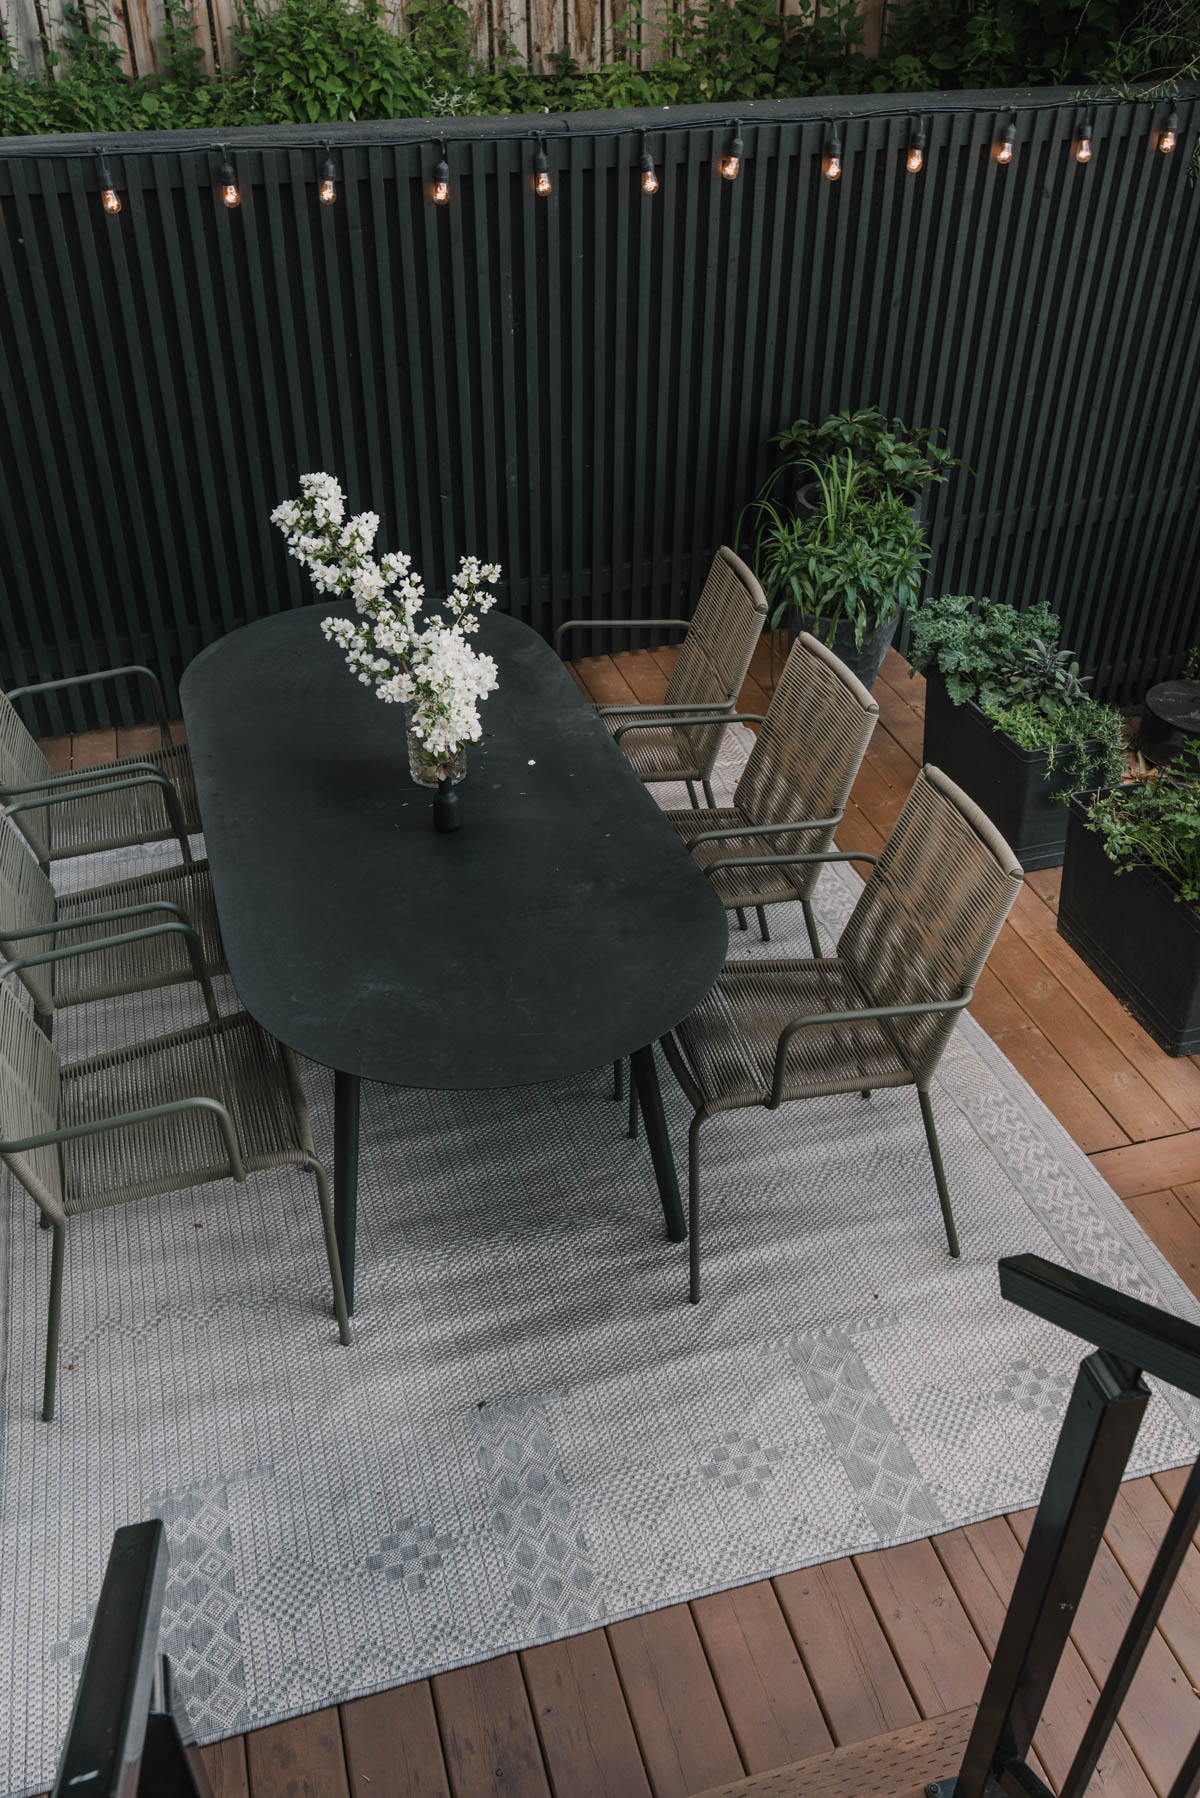 Tips for using a paint sprayer with wood stain for a deck